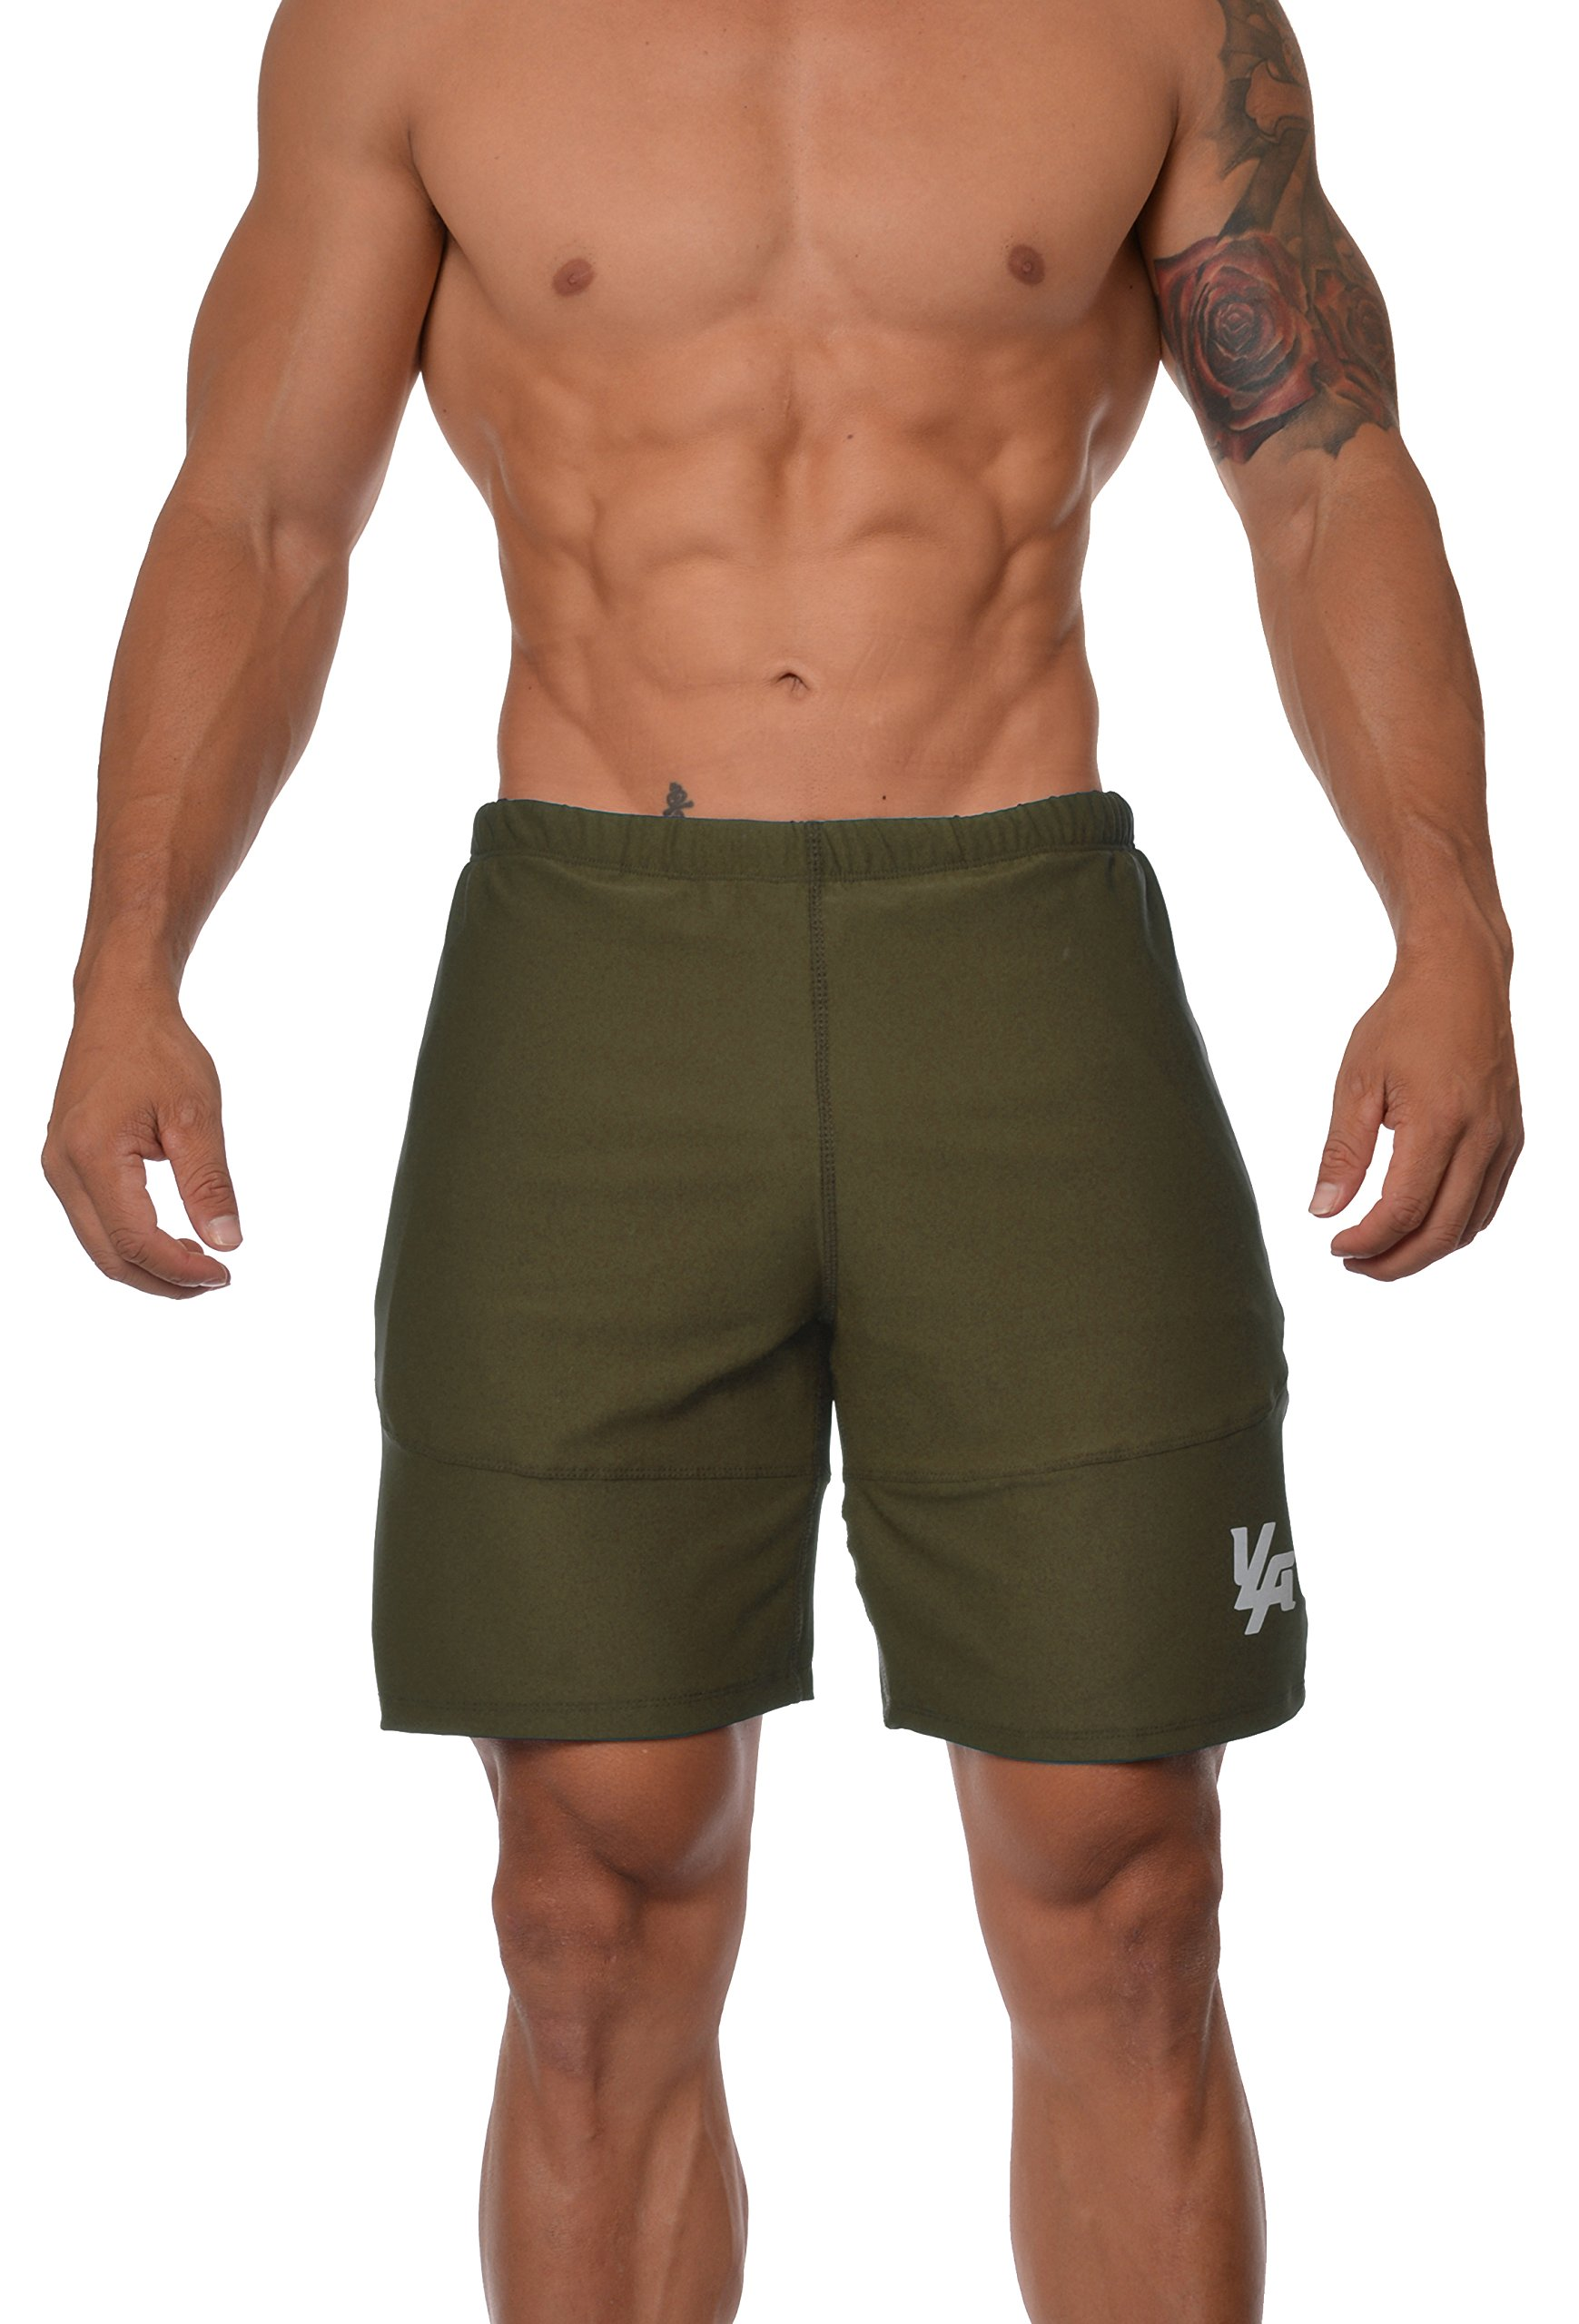 19cfa33fb YoungLA Mens Workout Shorts Casual Gym Athletic Activewear Bodybuilding  w/Zipper Pockets 111 product image